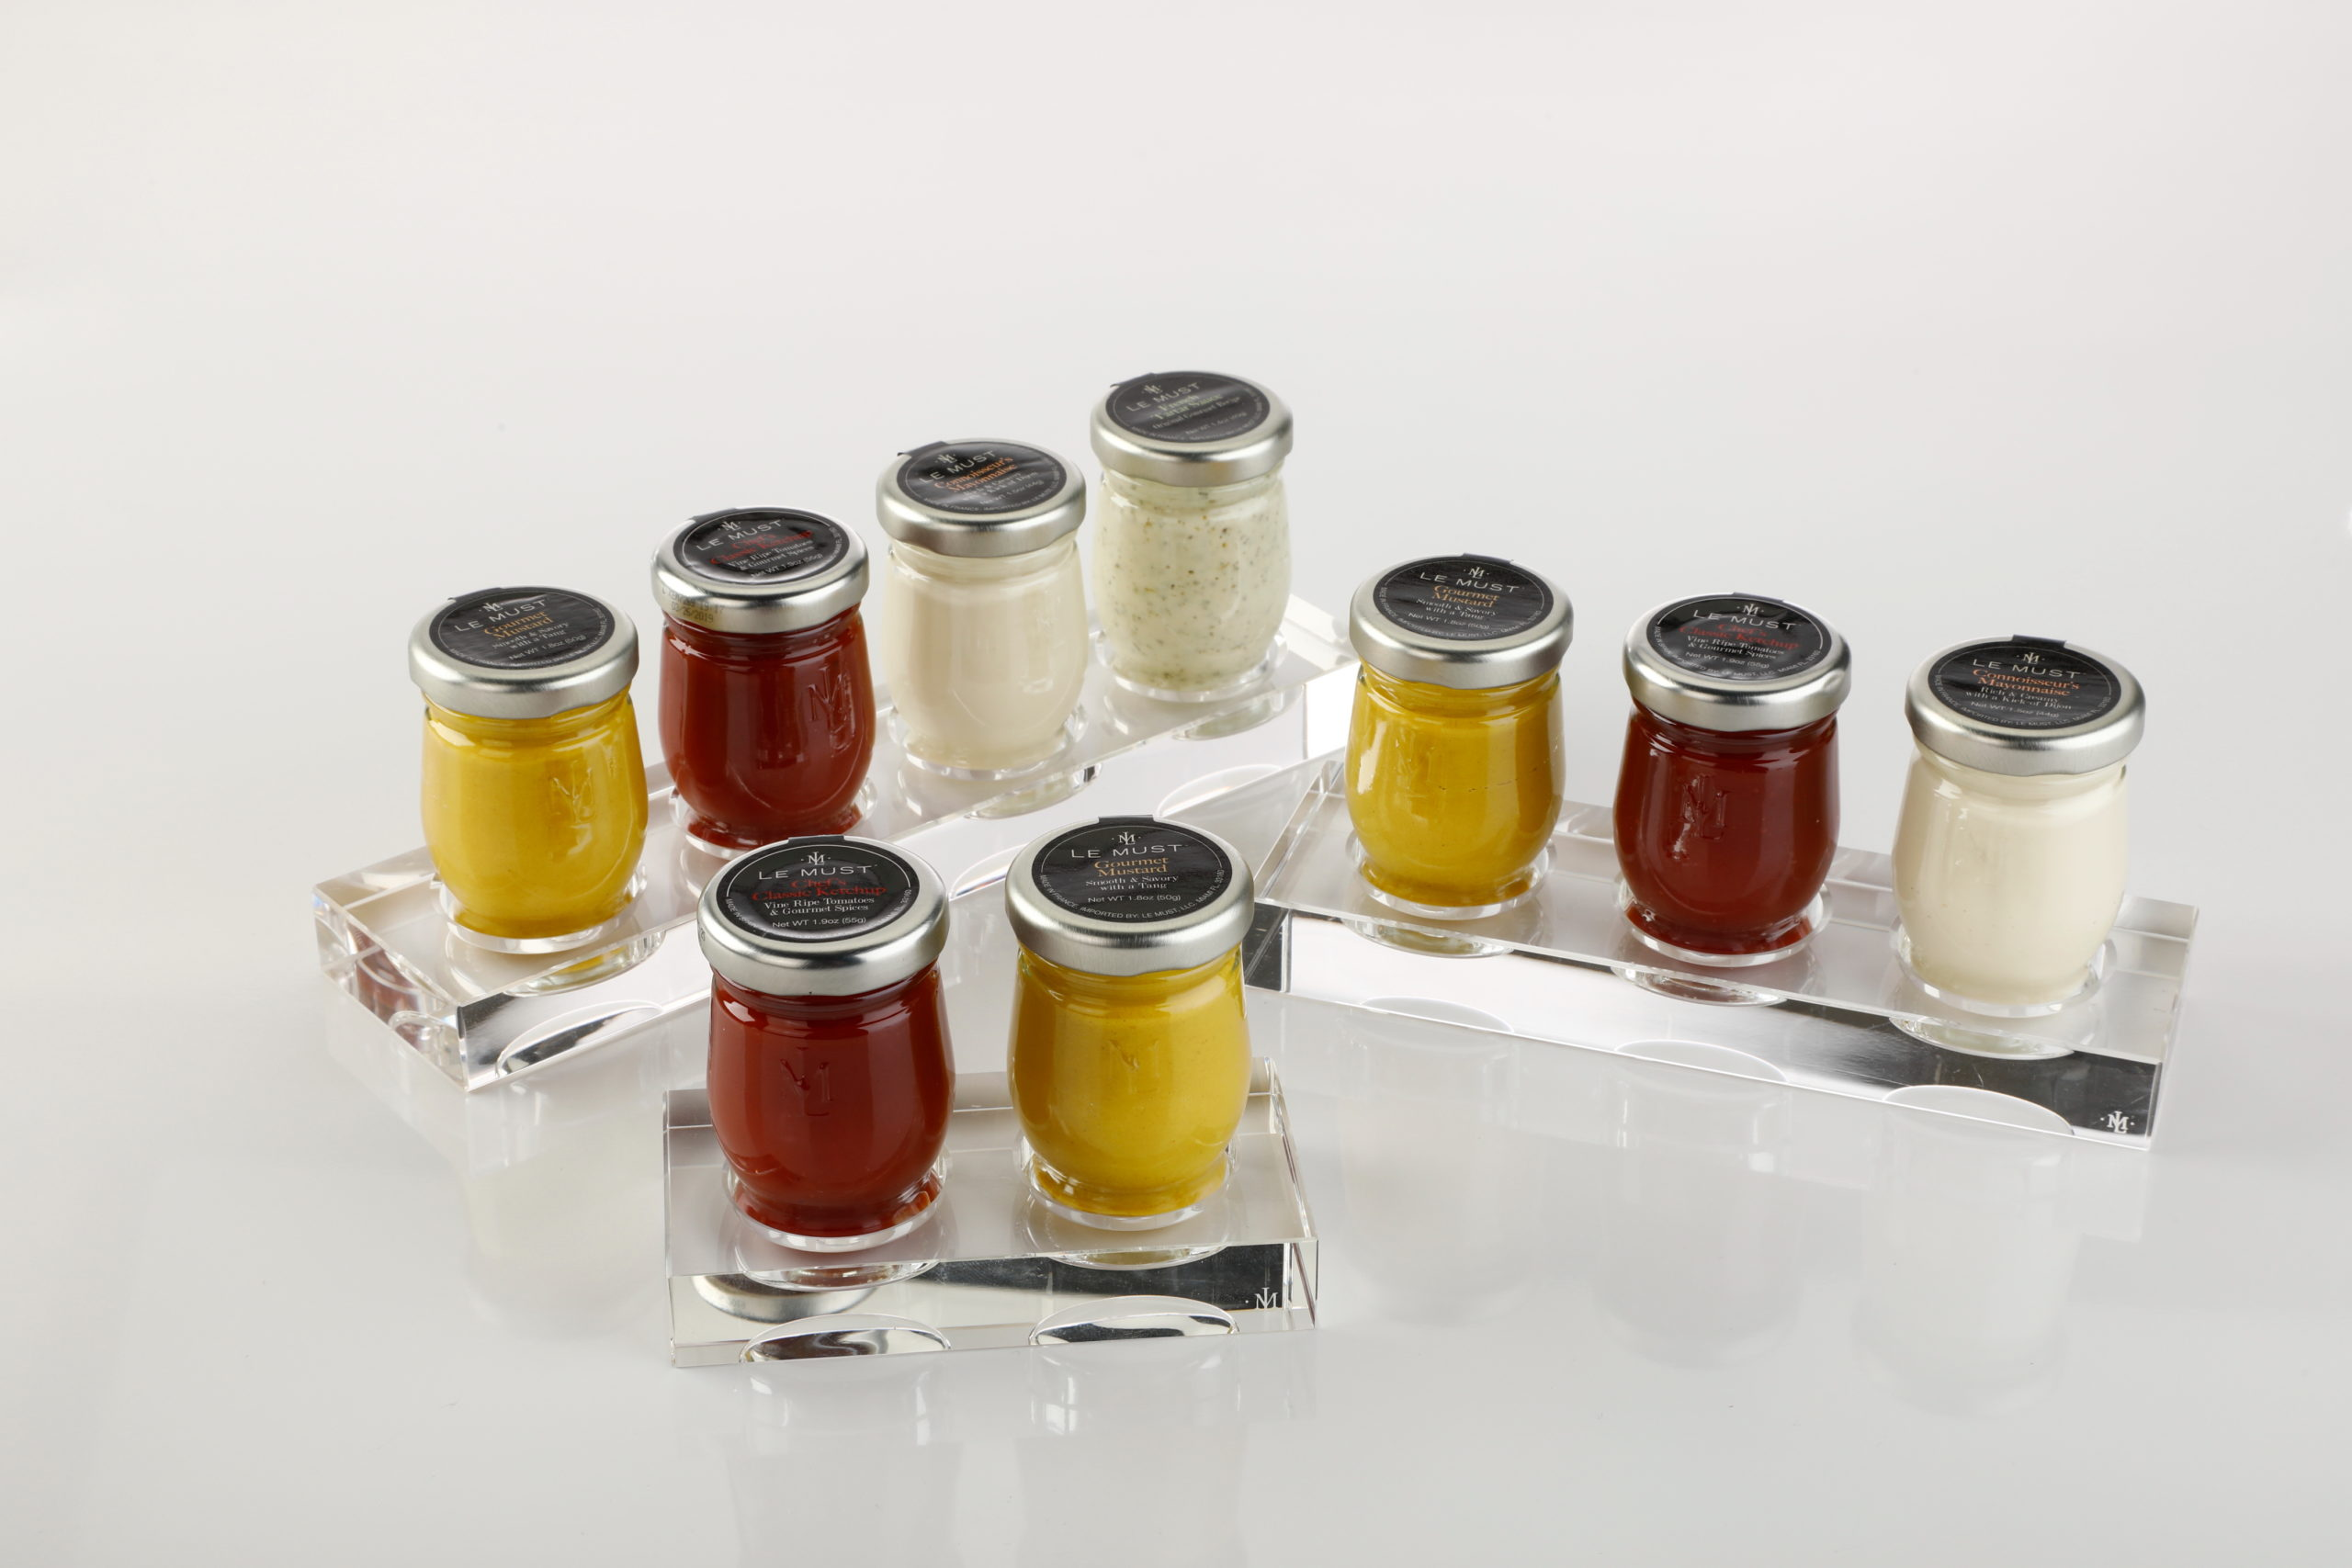 le must Cristal displays for condiments